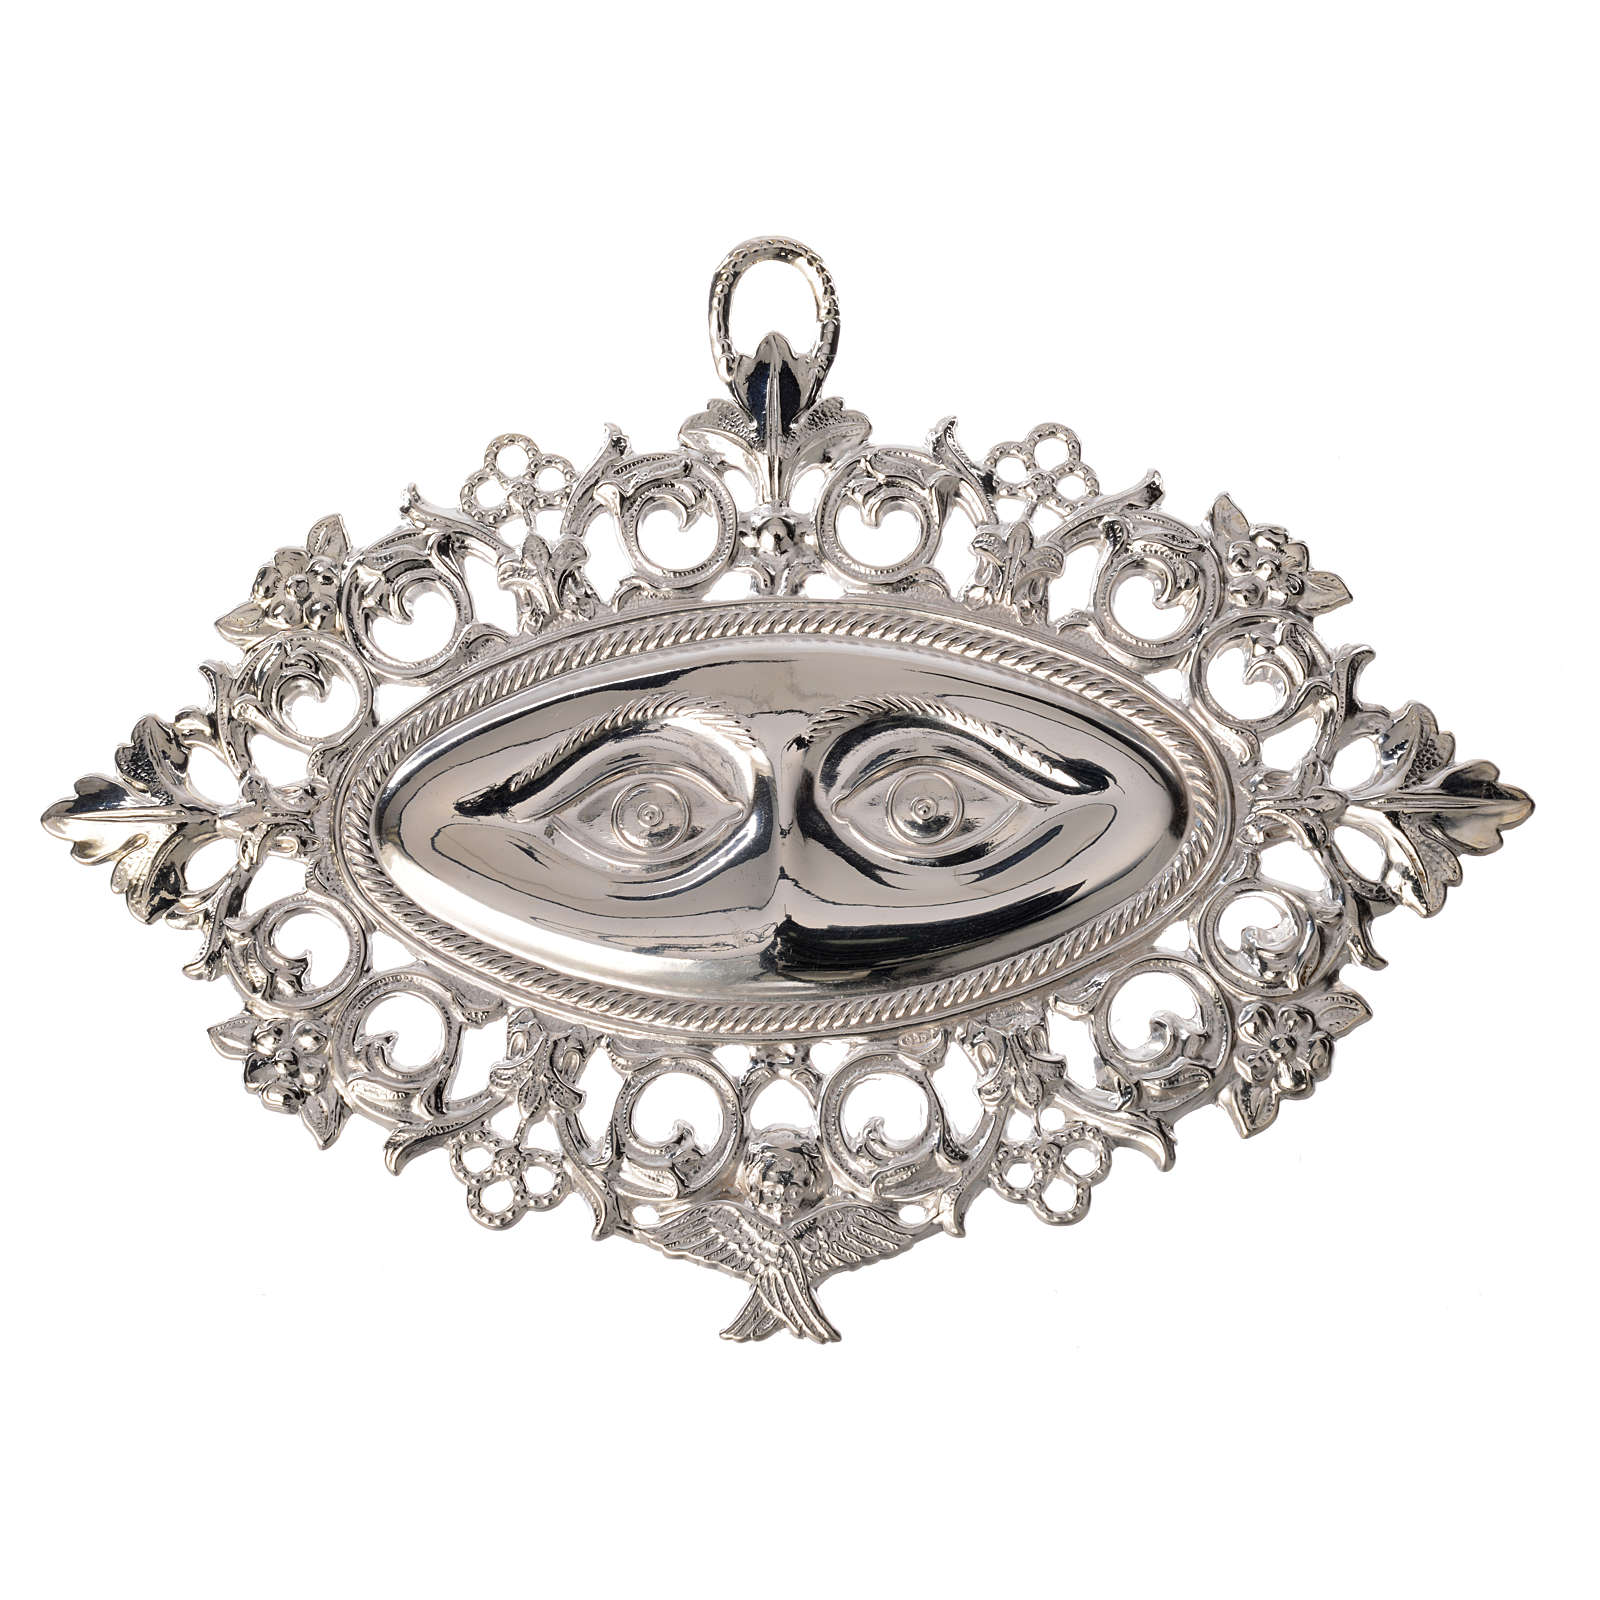 Ex-voto, perforated eyes in sterling silver or metal 13x8cm 3